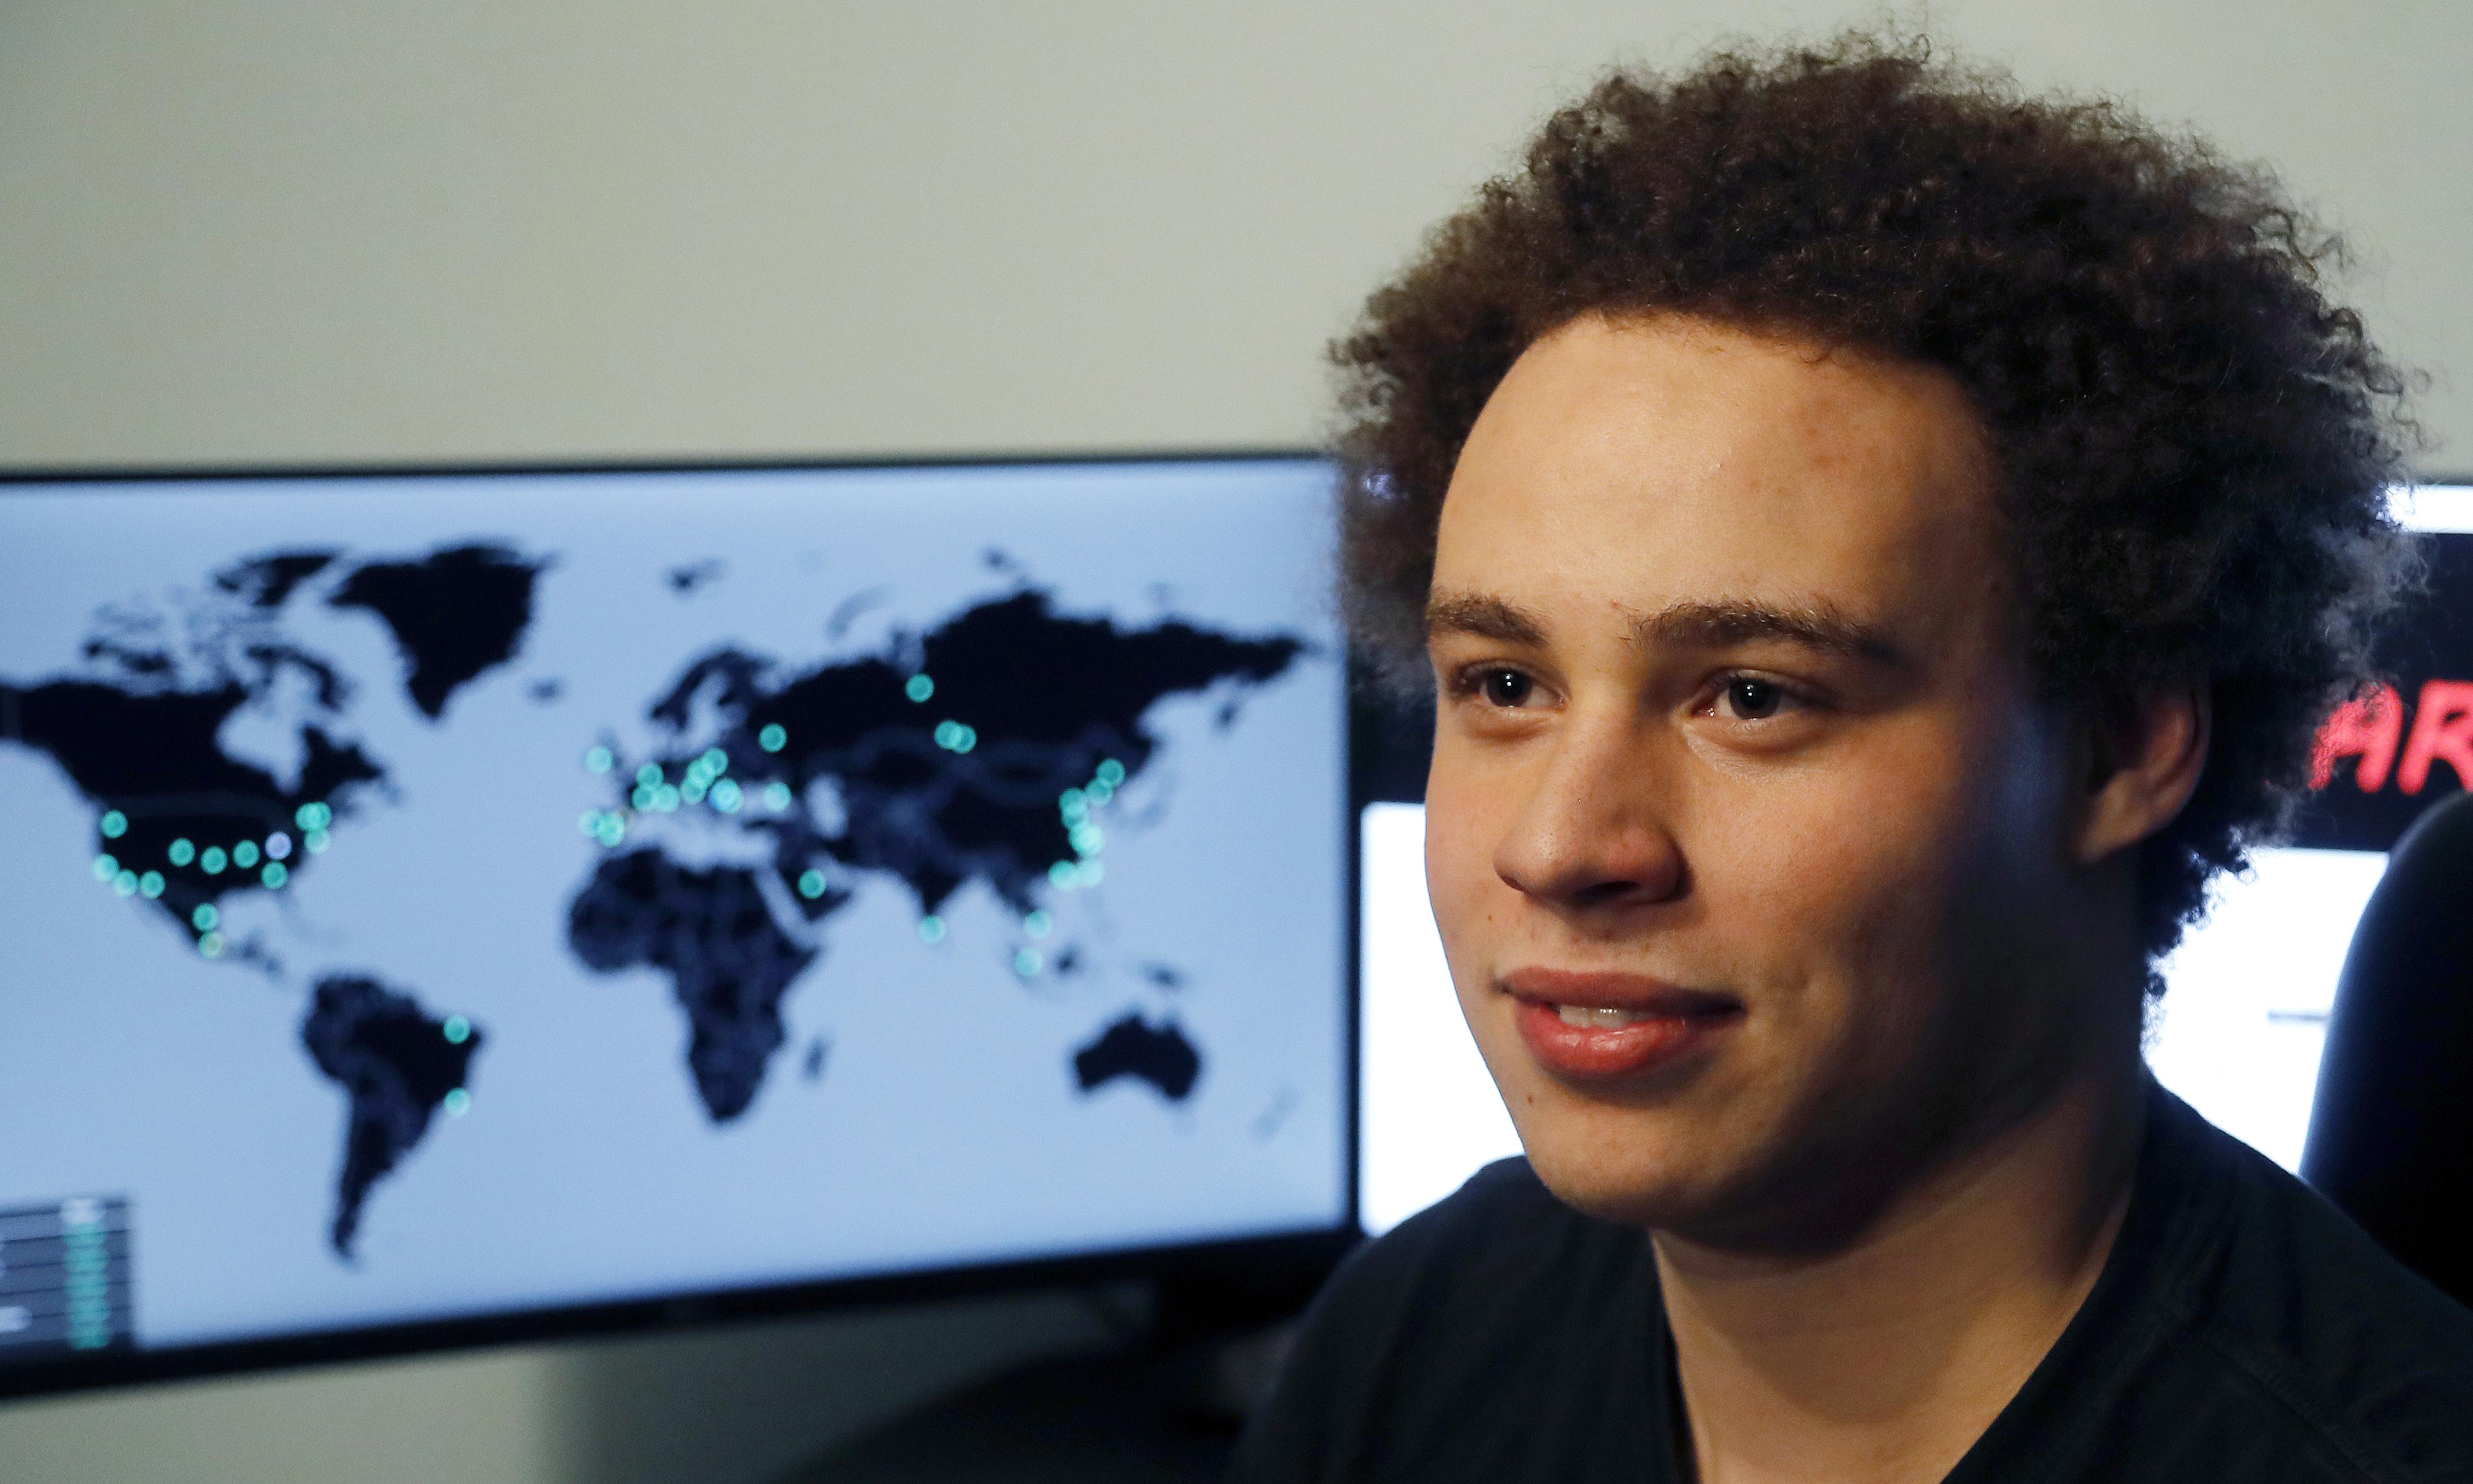 Briton who helped stop 2017 WannaCry virus spared jail over malware charges